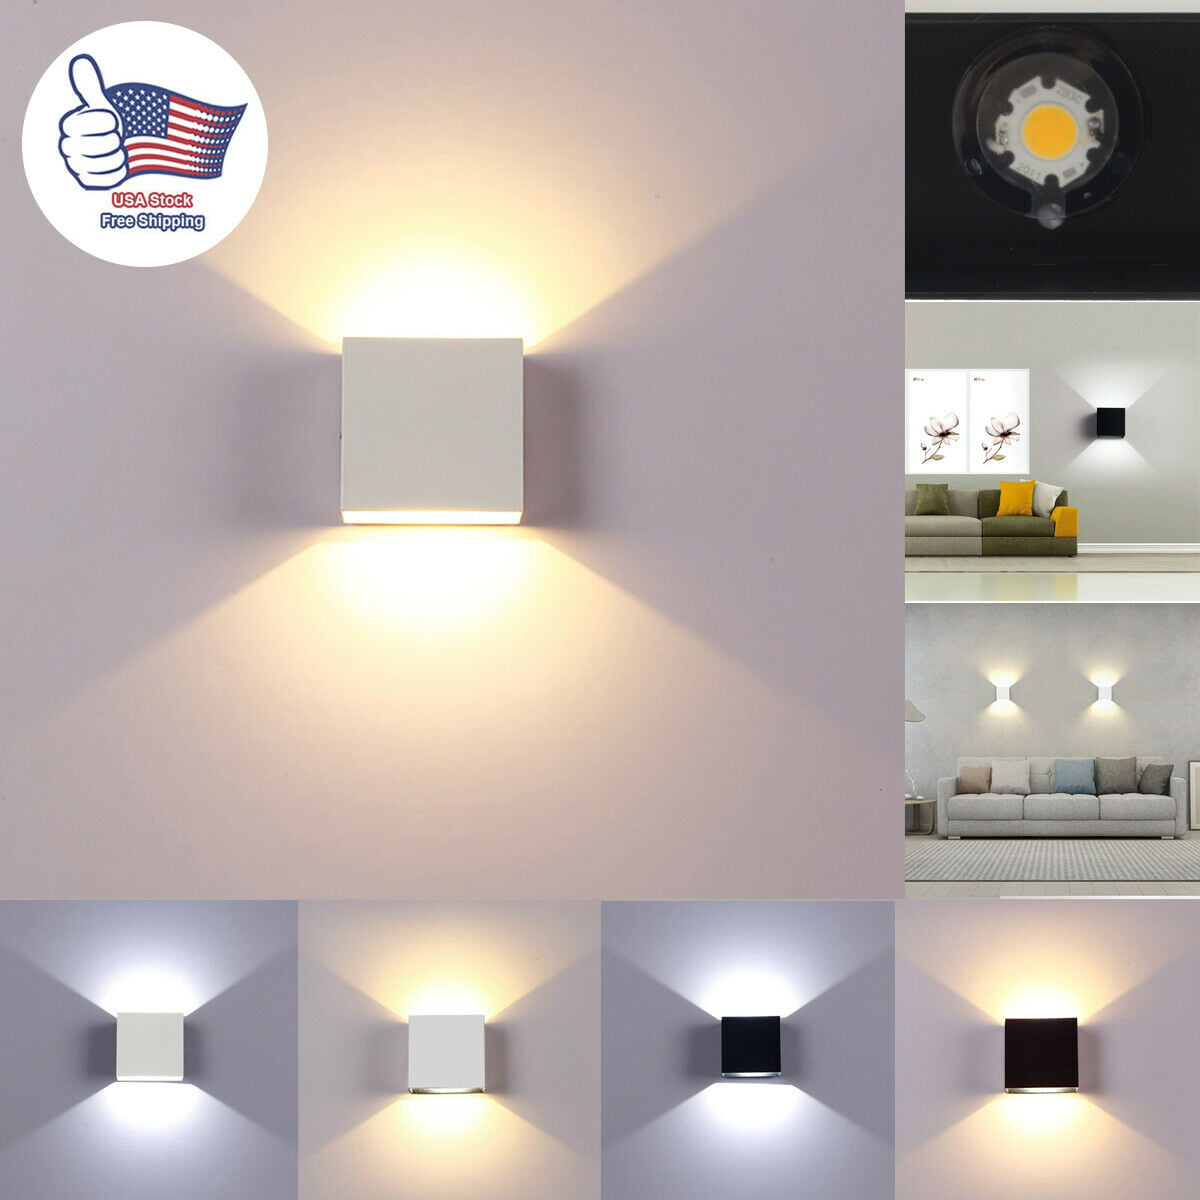 Eimeli Dimmable Wall Sconces Modern Led Wall Lamp 12w Indoor Wall Sconce Up Down Hallway Wall Mounted Light Fixtures For Bedroom Living Room Warm Light Walmart Com Walmart Com